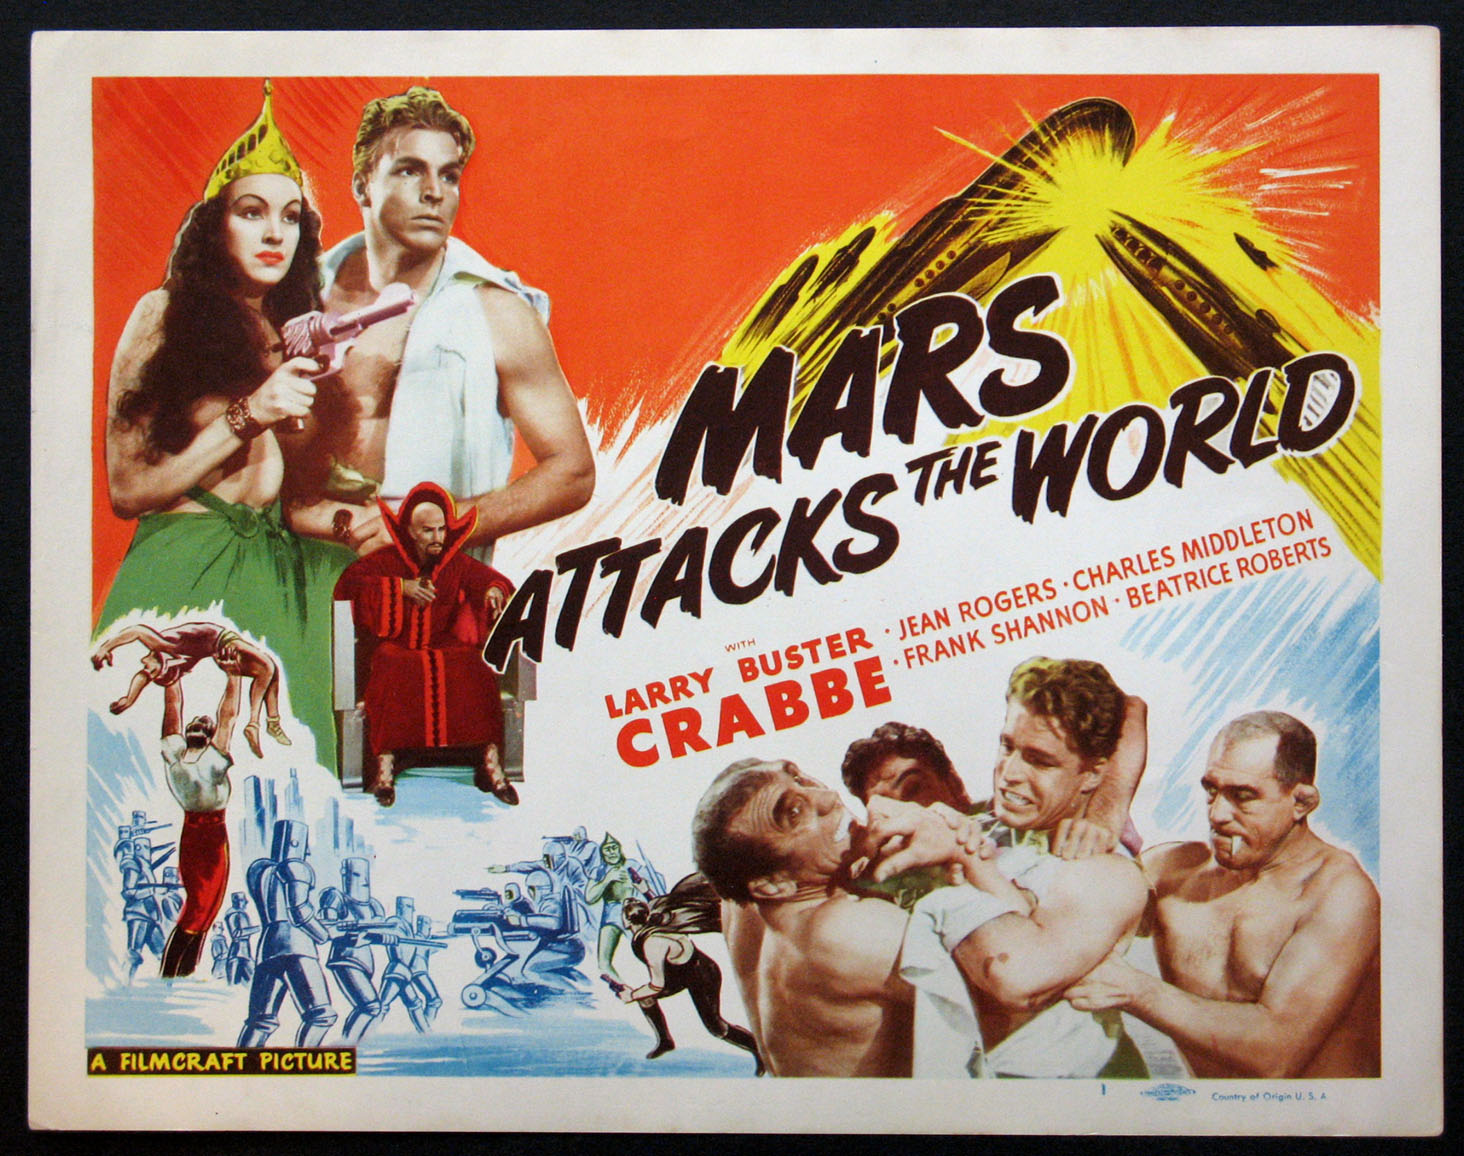 MARS ATTACKS THE WORLD (FLASH GORDON'S TRIP TO MARS) @ FilmPosters.com